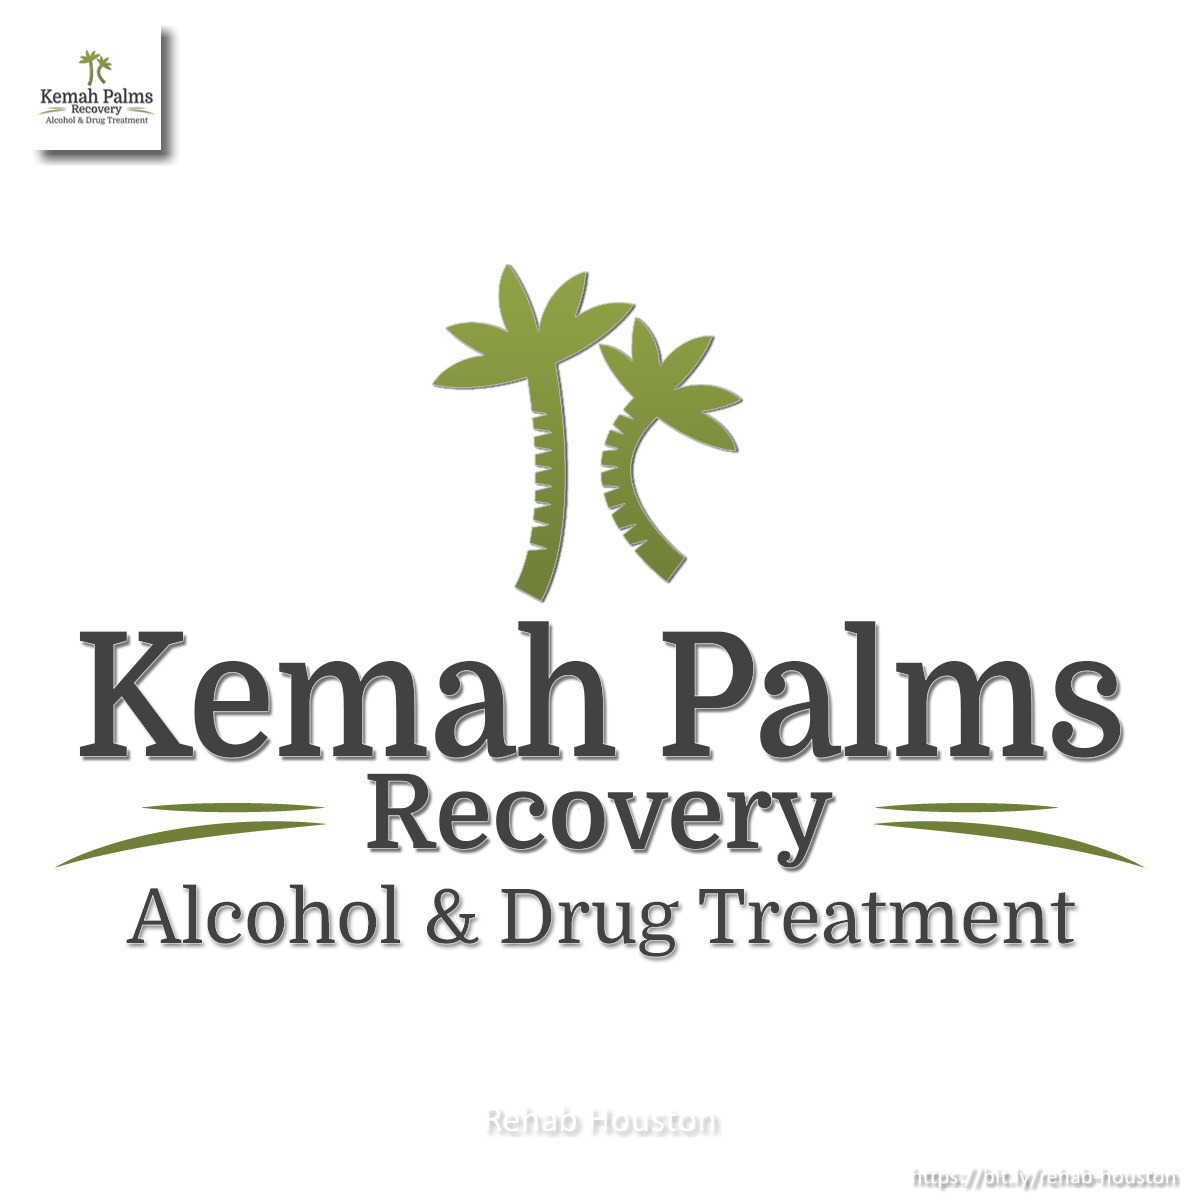 Kemah Palms Recovery - Alcohol & Drug Treatment Mentions Services That People Can Get